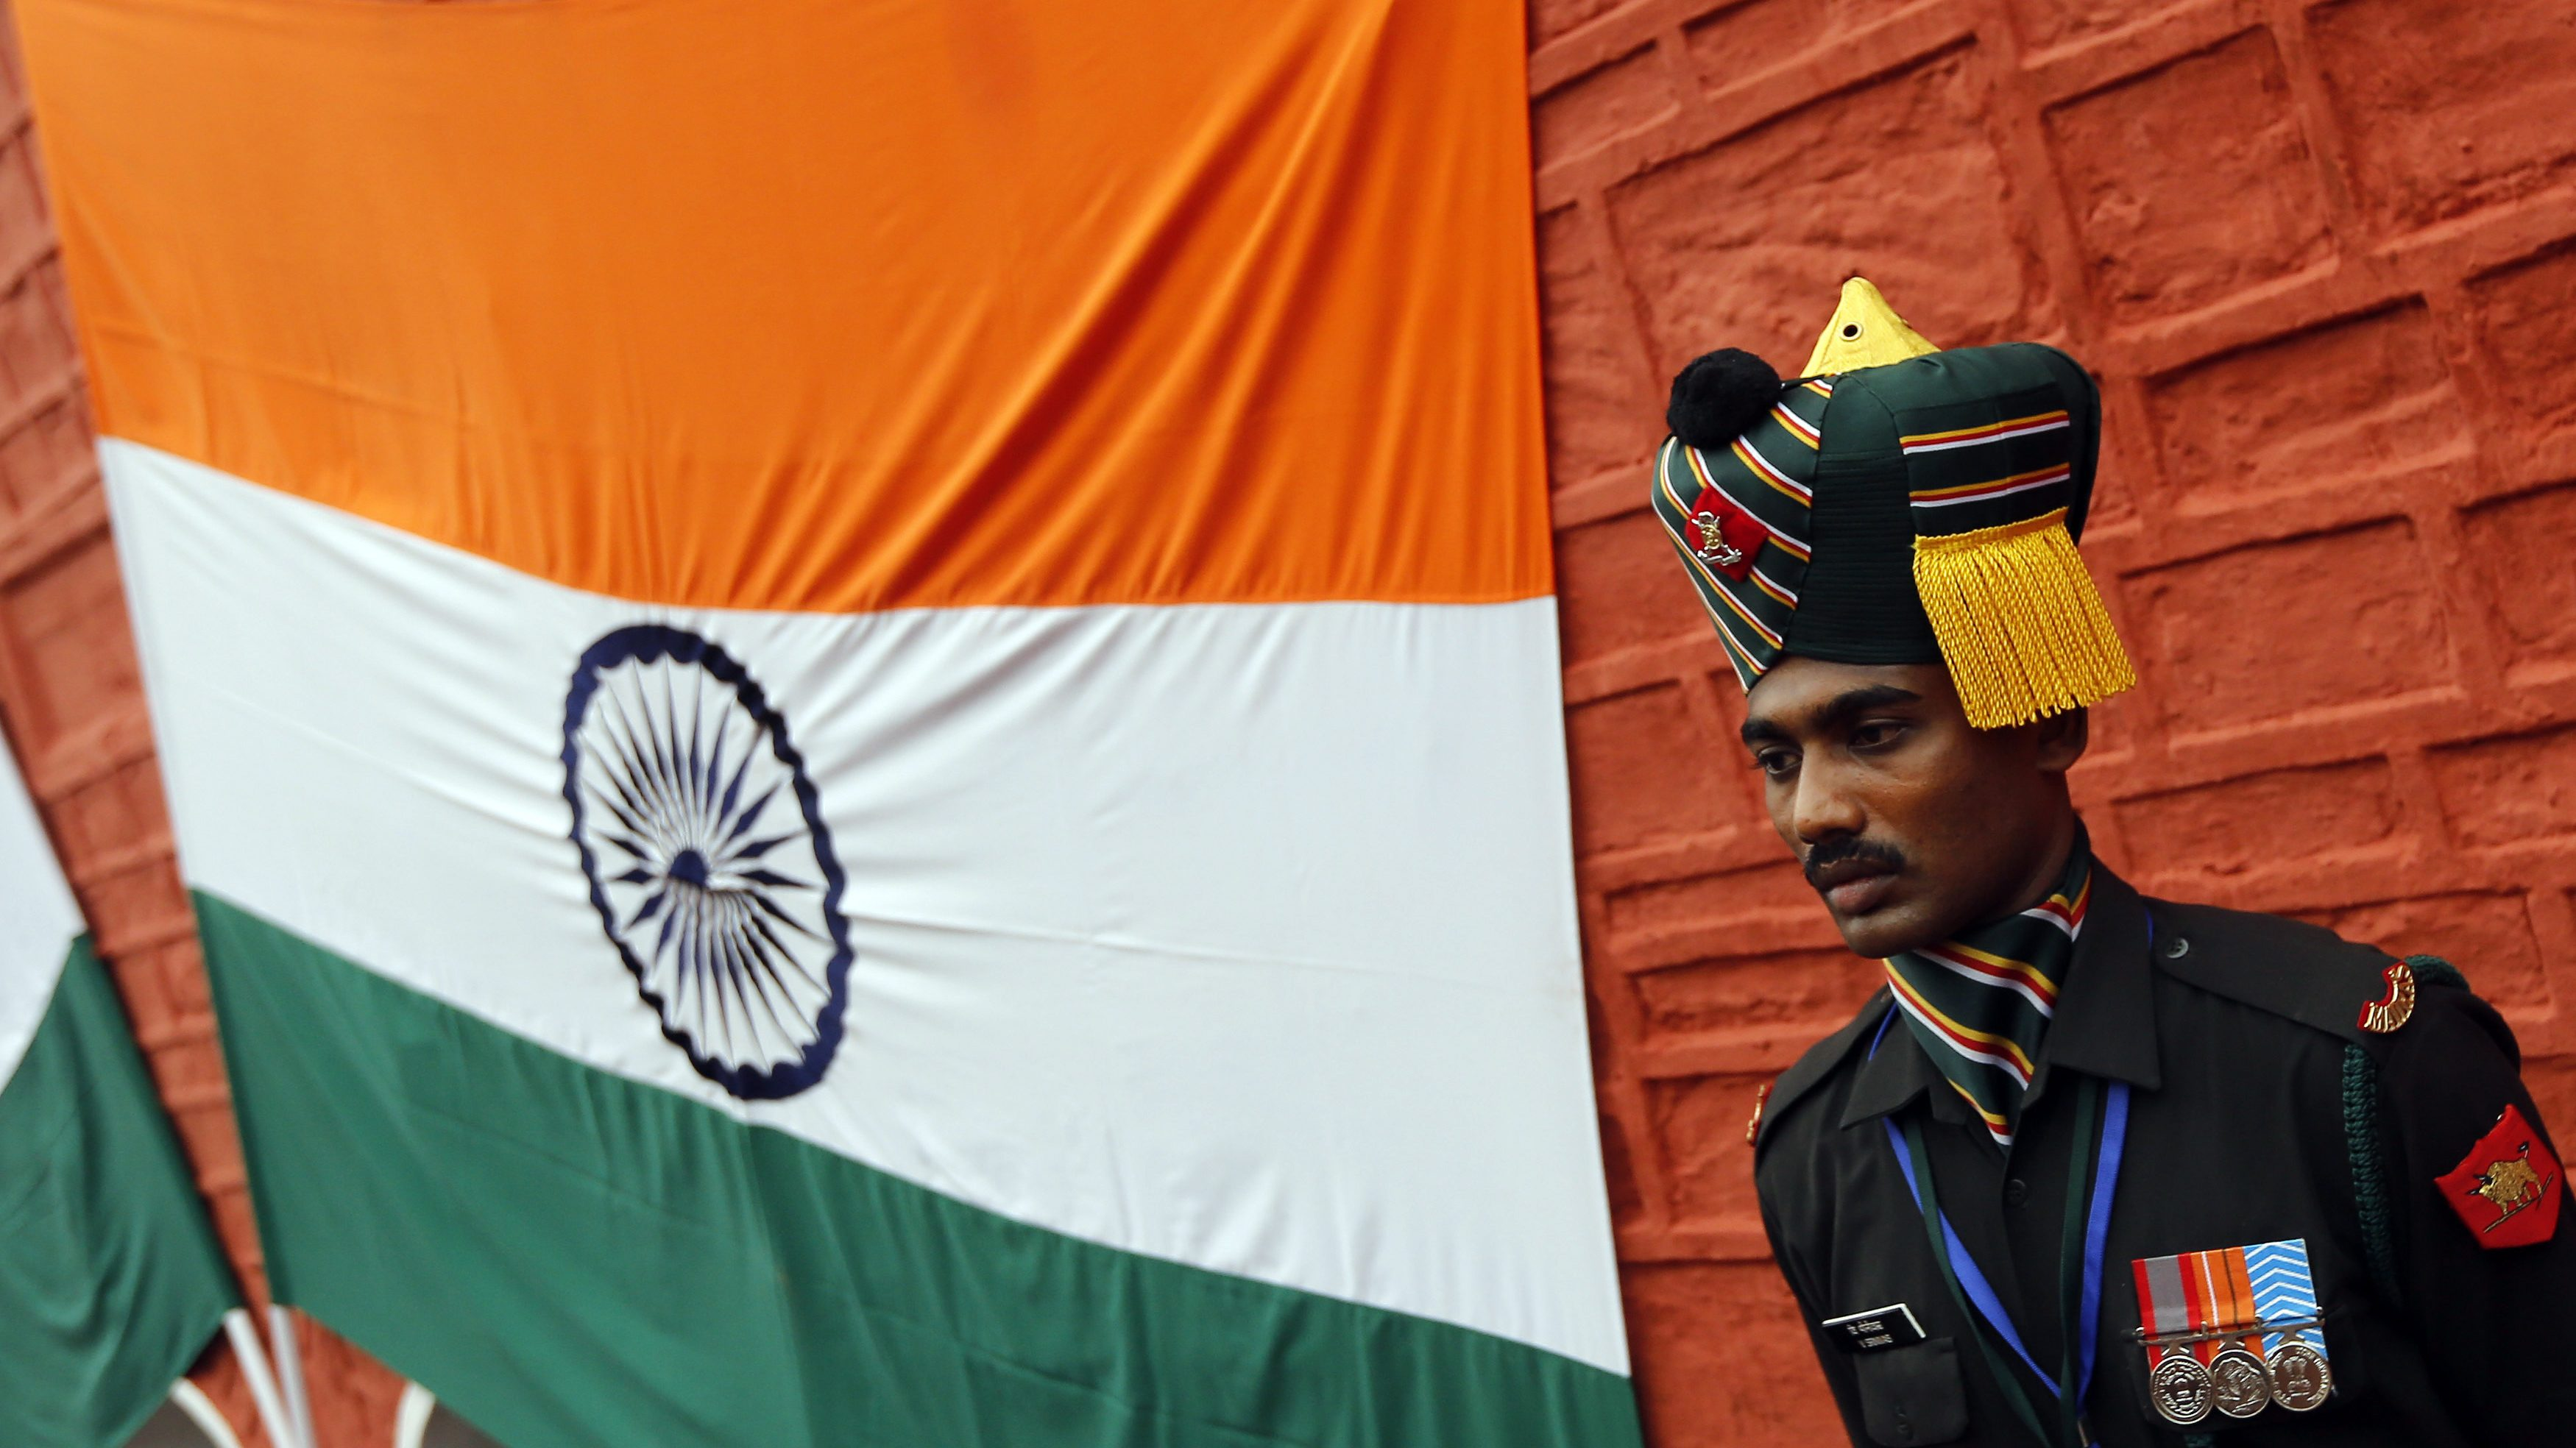 An Indian soldier stands next to an Indian national flag during the full-dress rehearsal for India's Independence Day celebrations at the historic Red Fort in Delhi August 13, 2013. India commemorates its Independence Day on August 15. REUTERS/Adnan Abidi (INDIA - Tags: ANNIVERSARY MILITARY) - GM1E98D136Y01